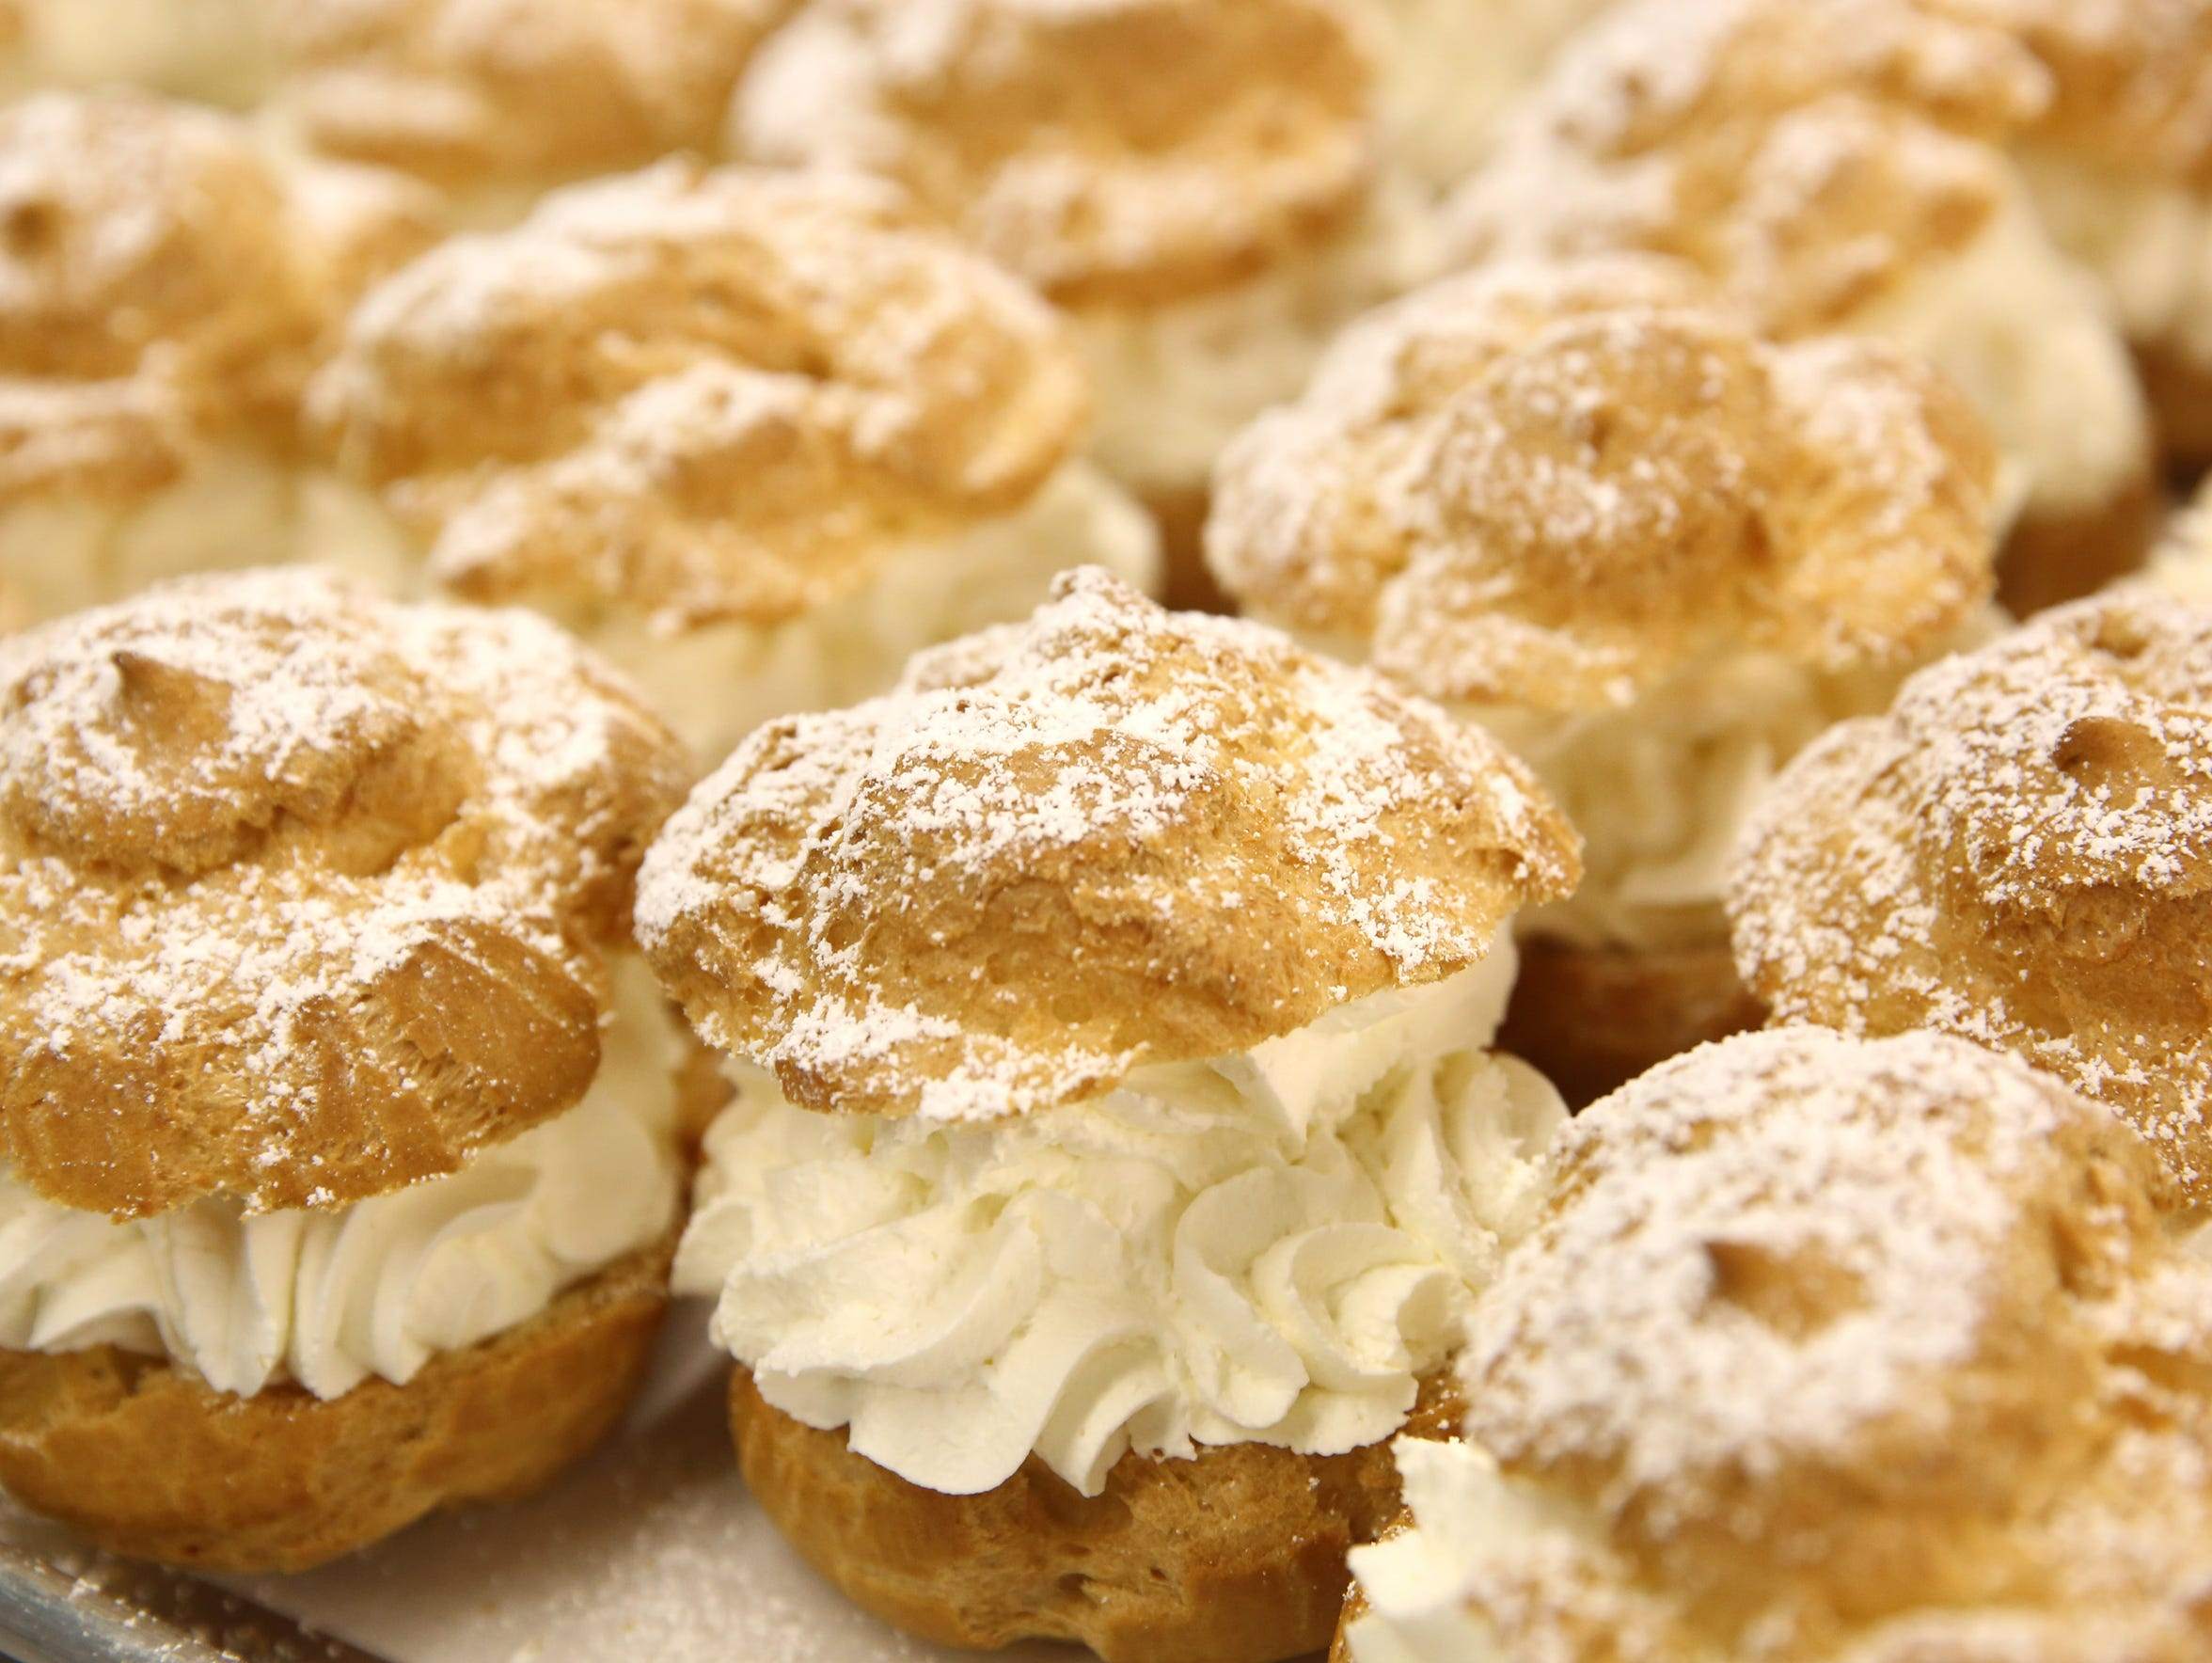 Cream Puffs will be on the menu come Wisconsin State